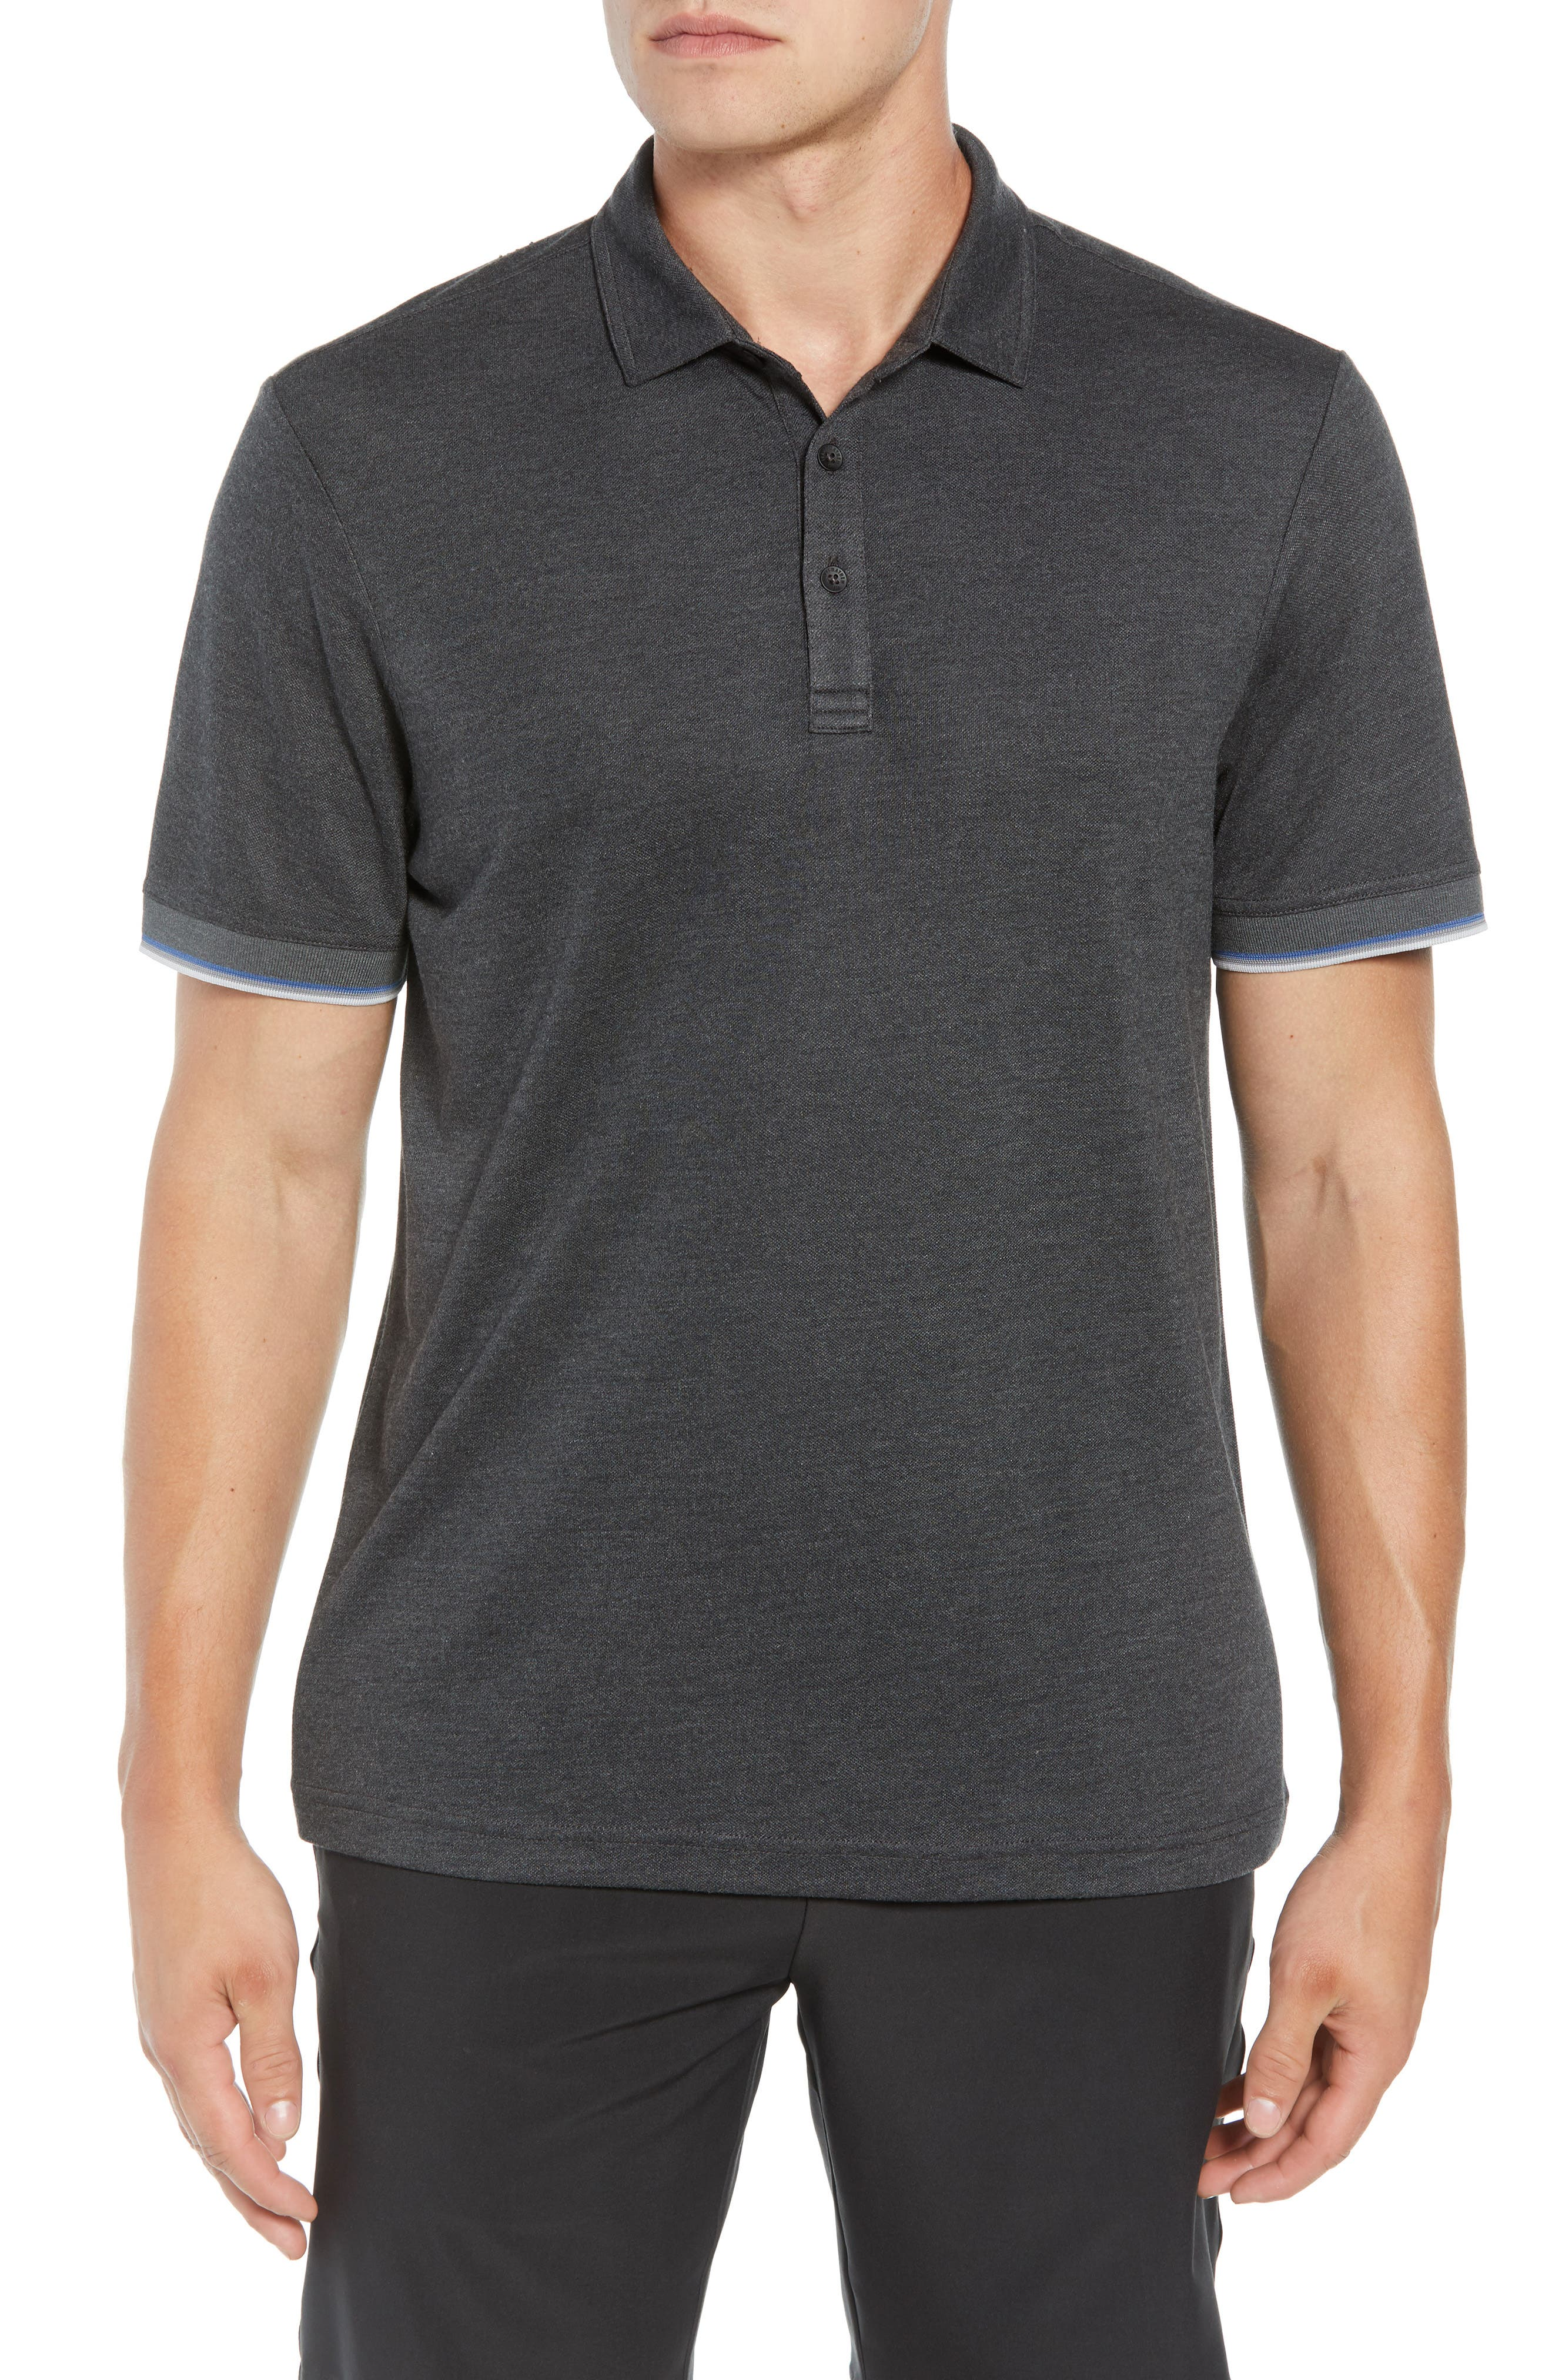 Mag Bay Polo,                         Main,                         color, BLACK/ GREY PINSTRIPE